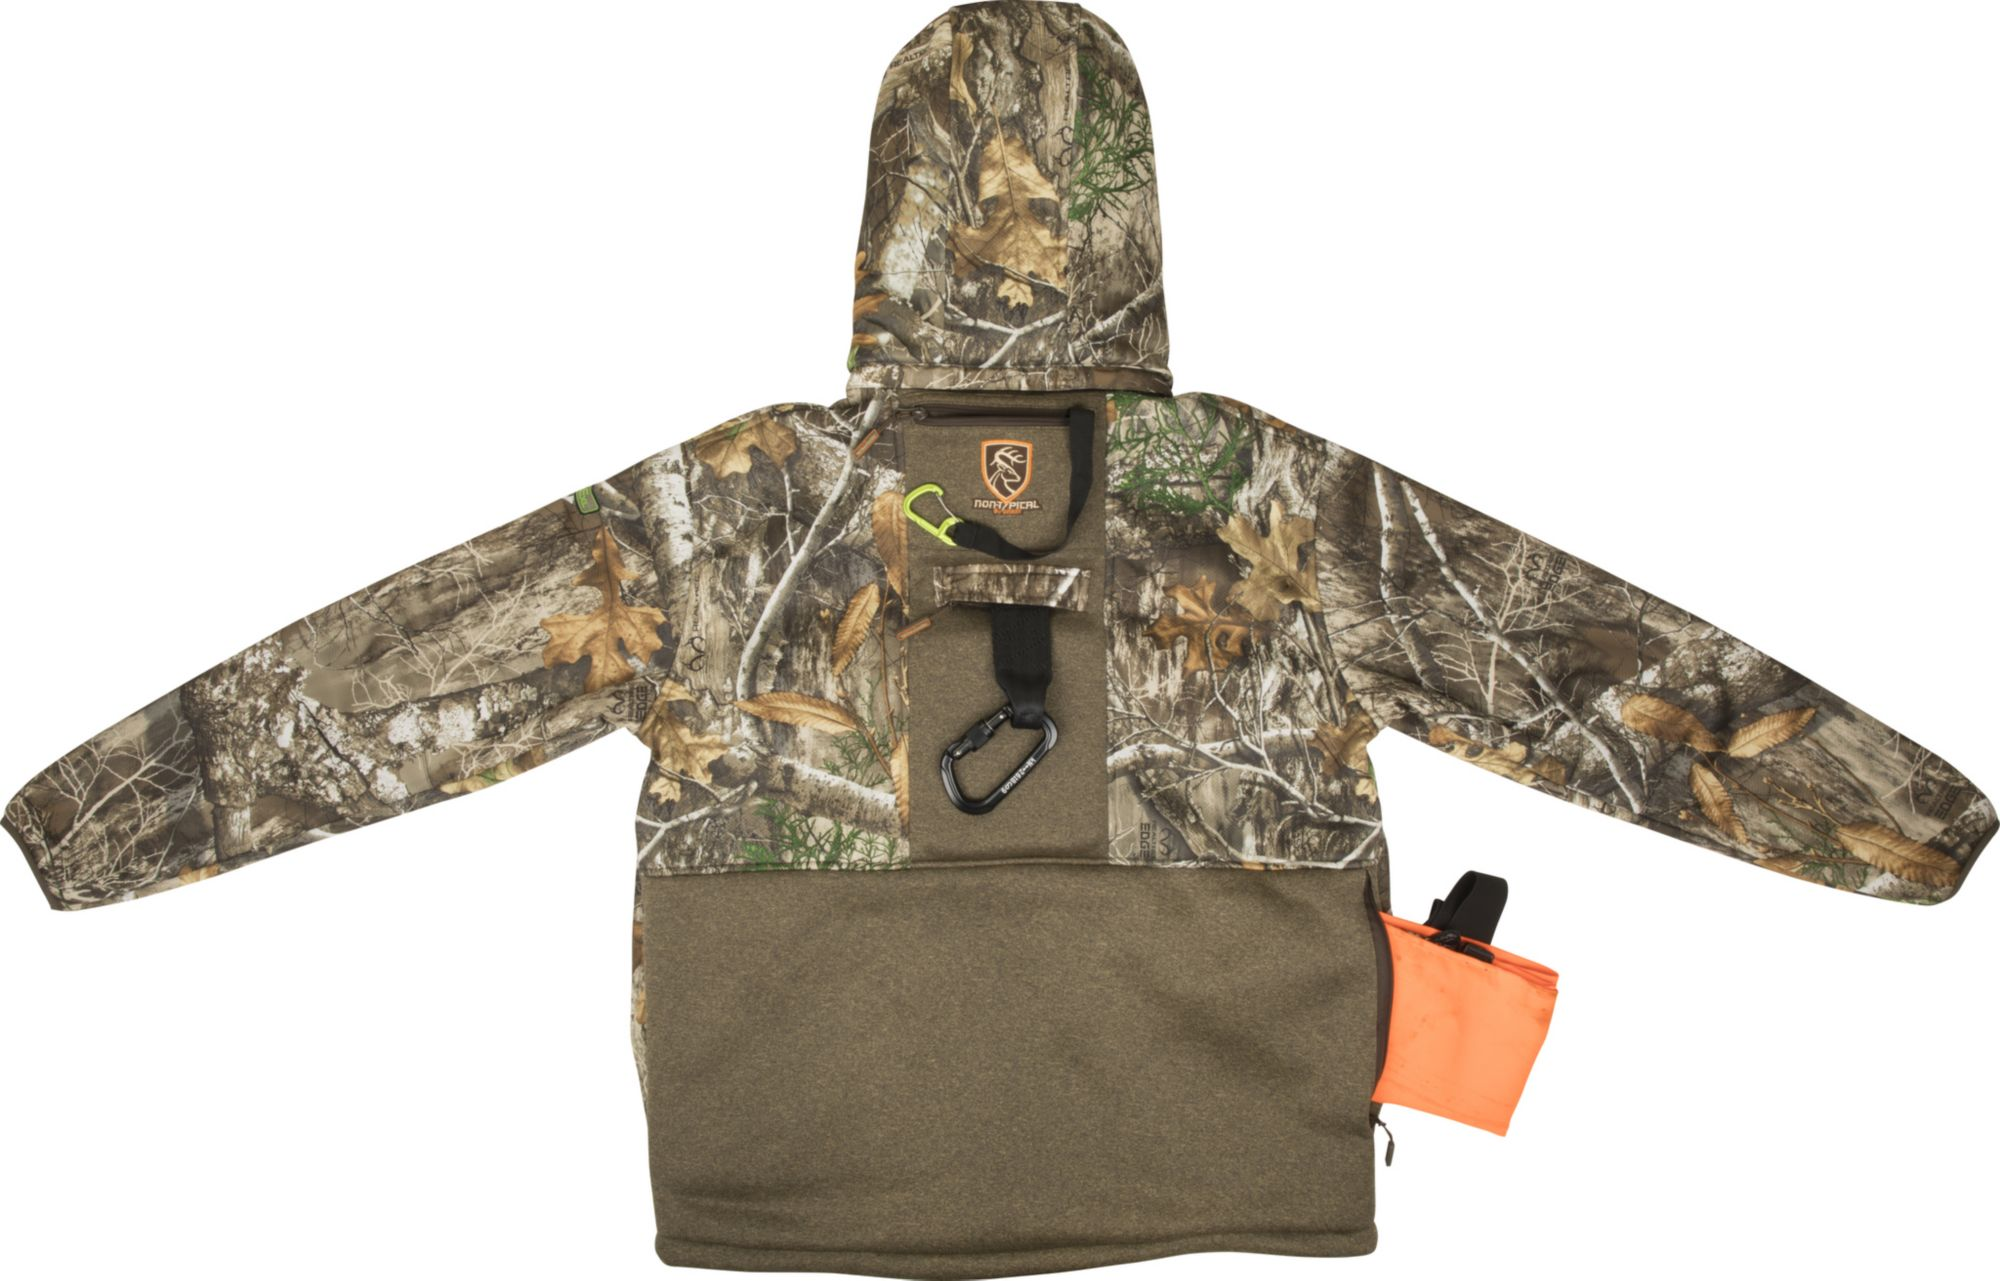 Drake Waterfowl Men's Non-Typical Stand Hunter's Silencer Hunting Jacket with Agion Active XL, Medium, Timber Realtree/AP